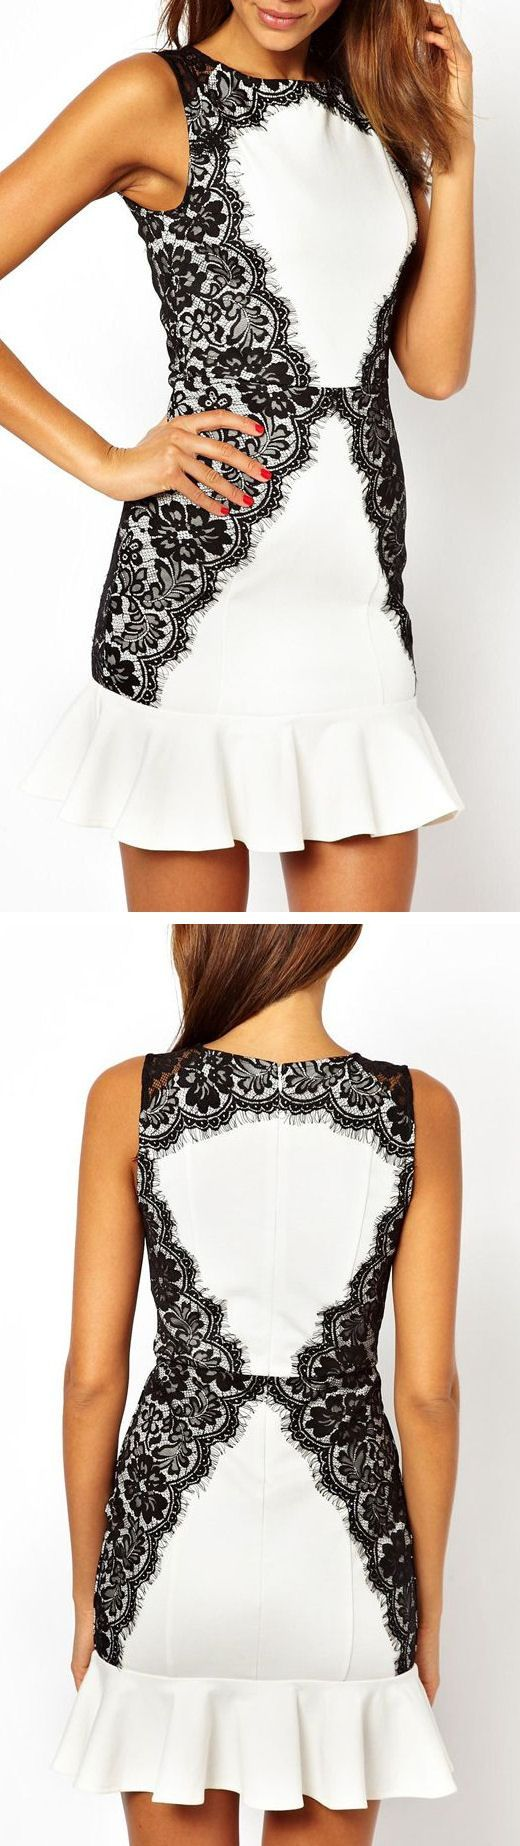 Lace Trim Ruffle Dress //